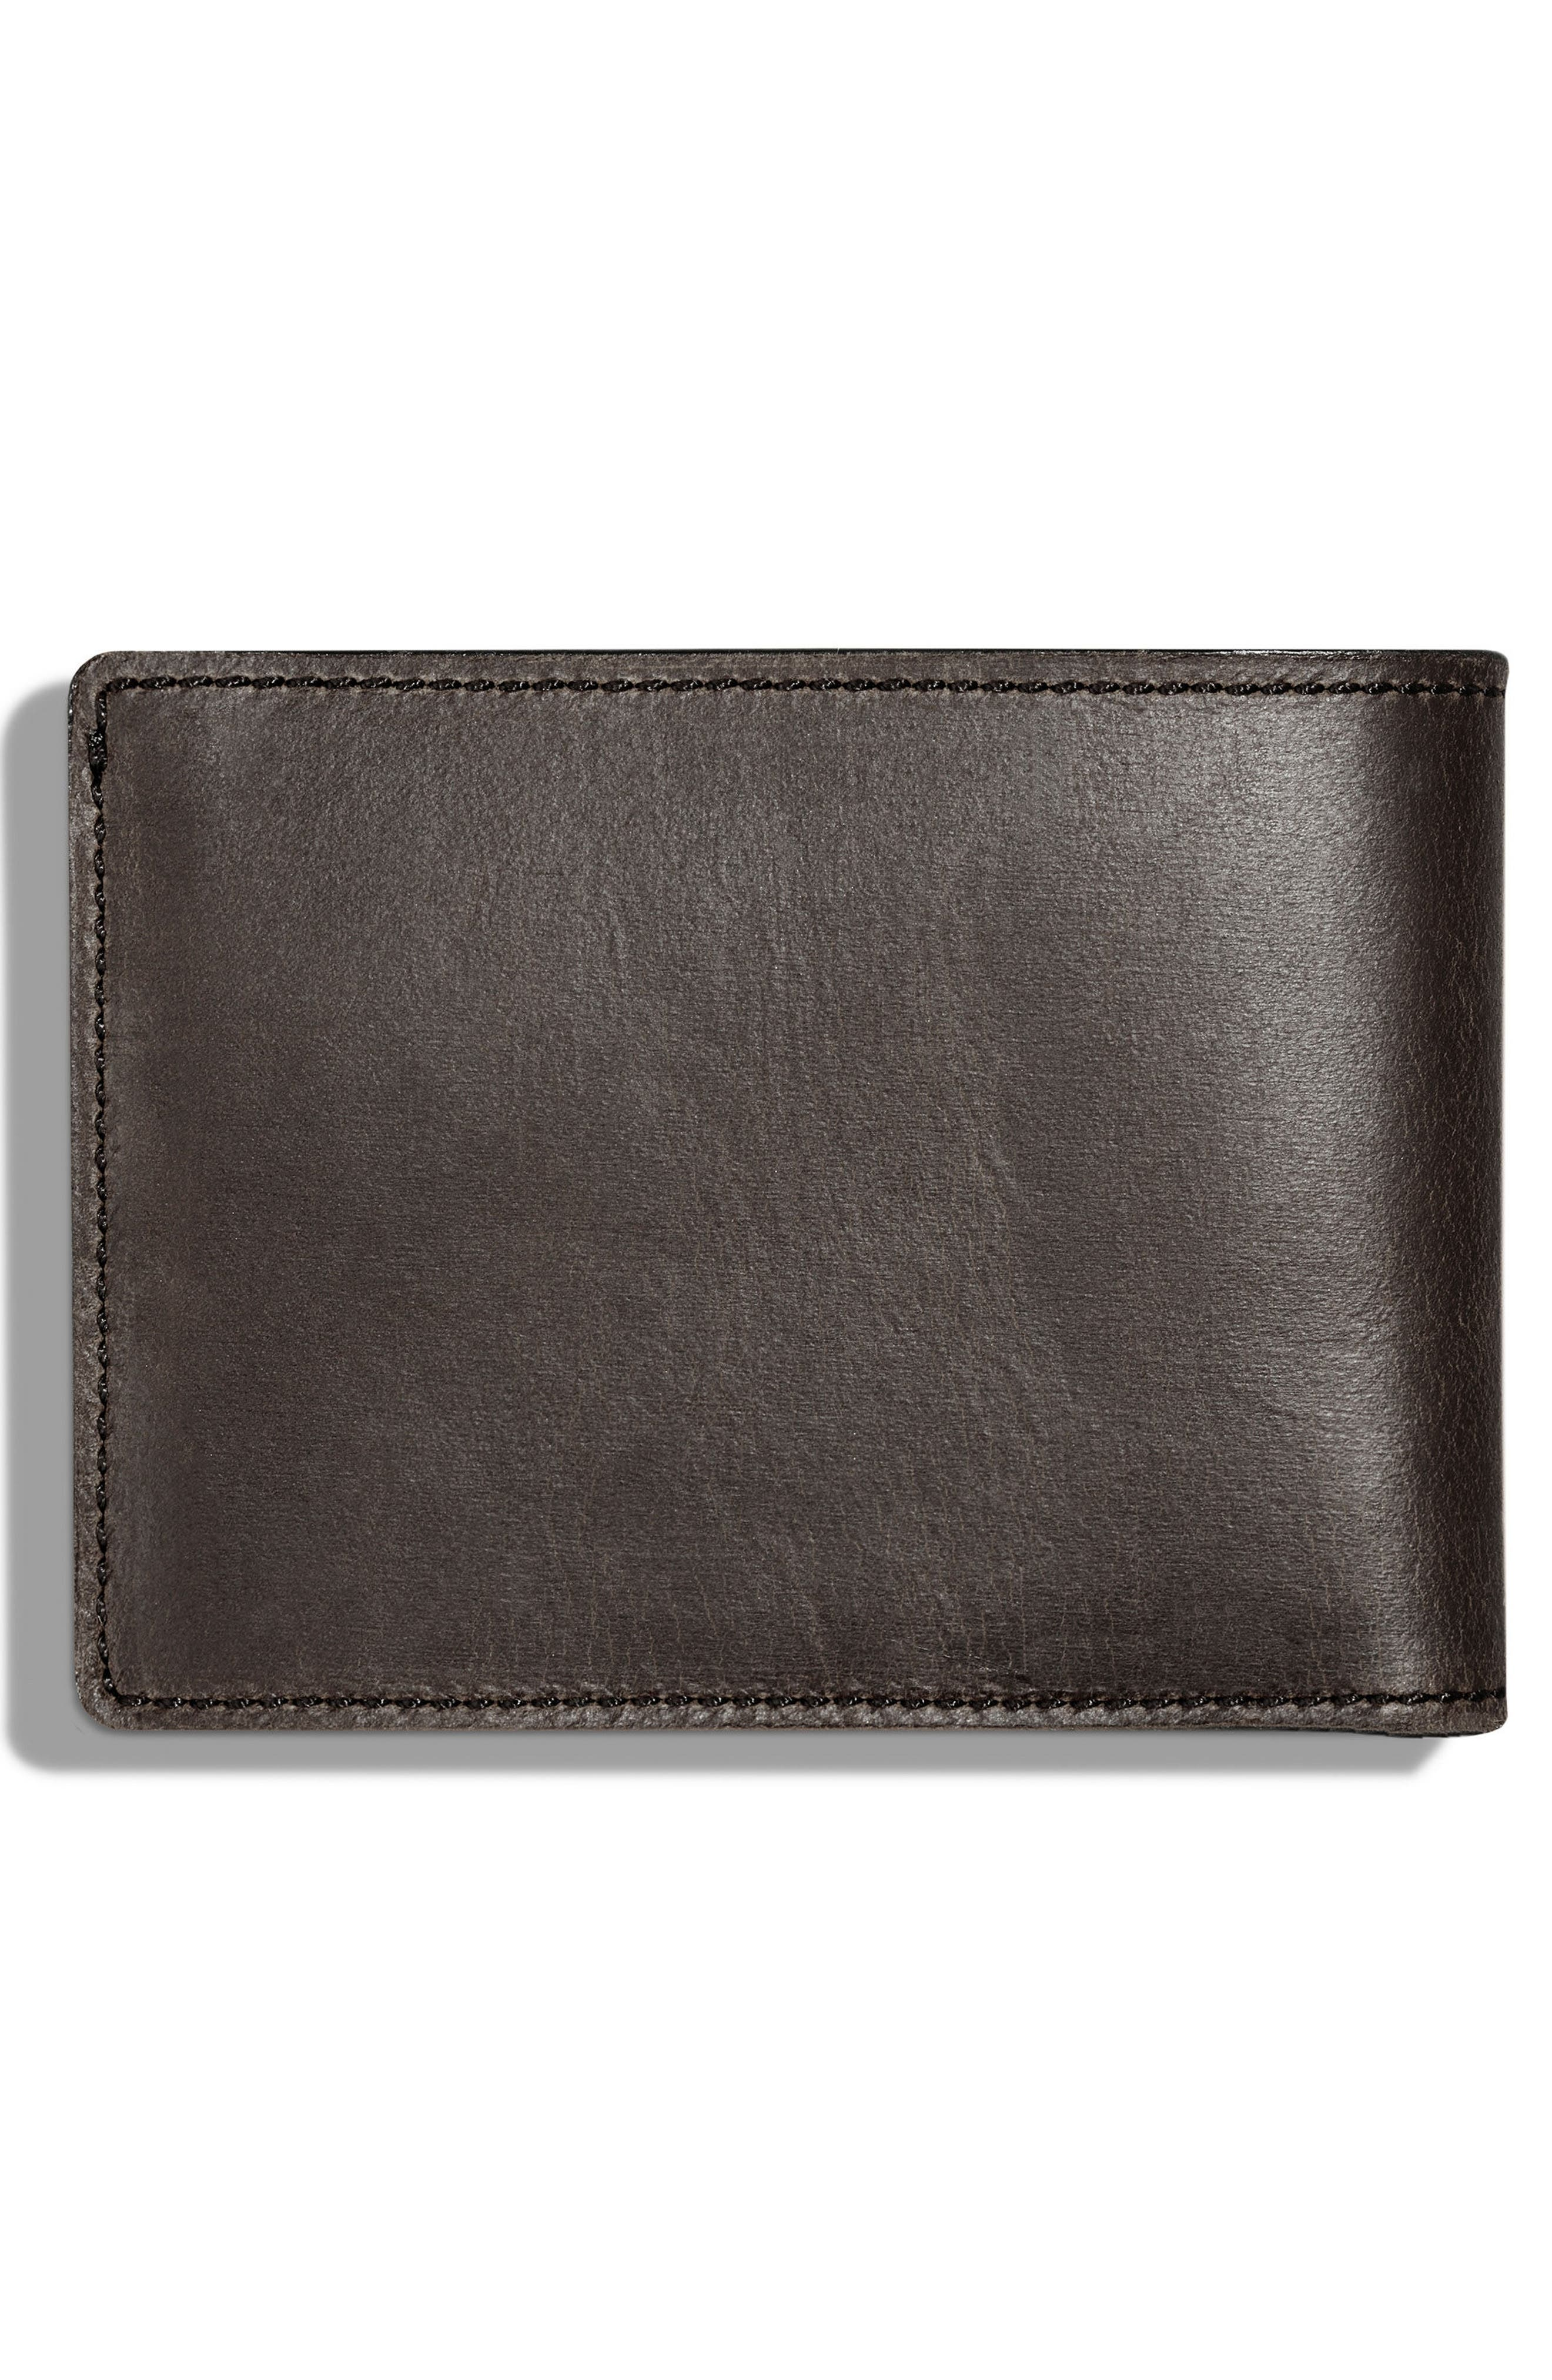 Leather Wallet,                             Alternate thumbnail 3, color,                             Charcoal